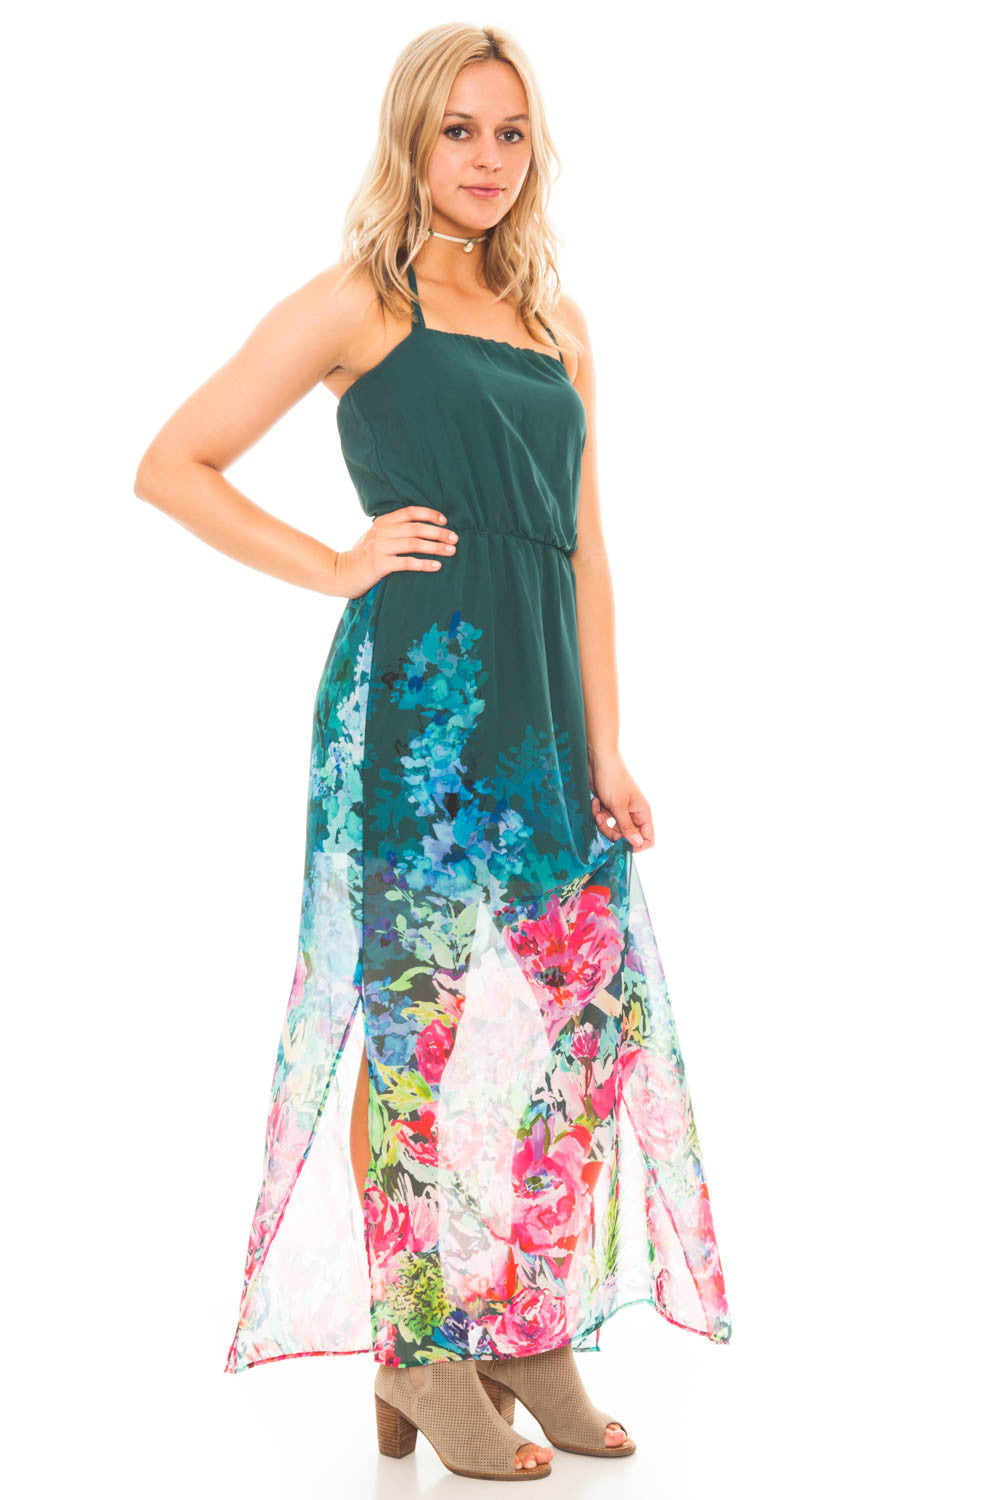 Dress - Halter Maxi Dress with Side Slits